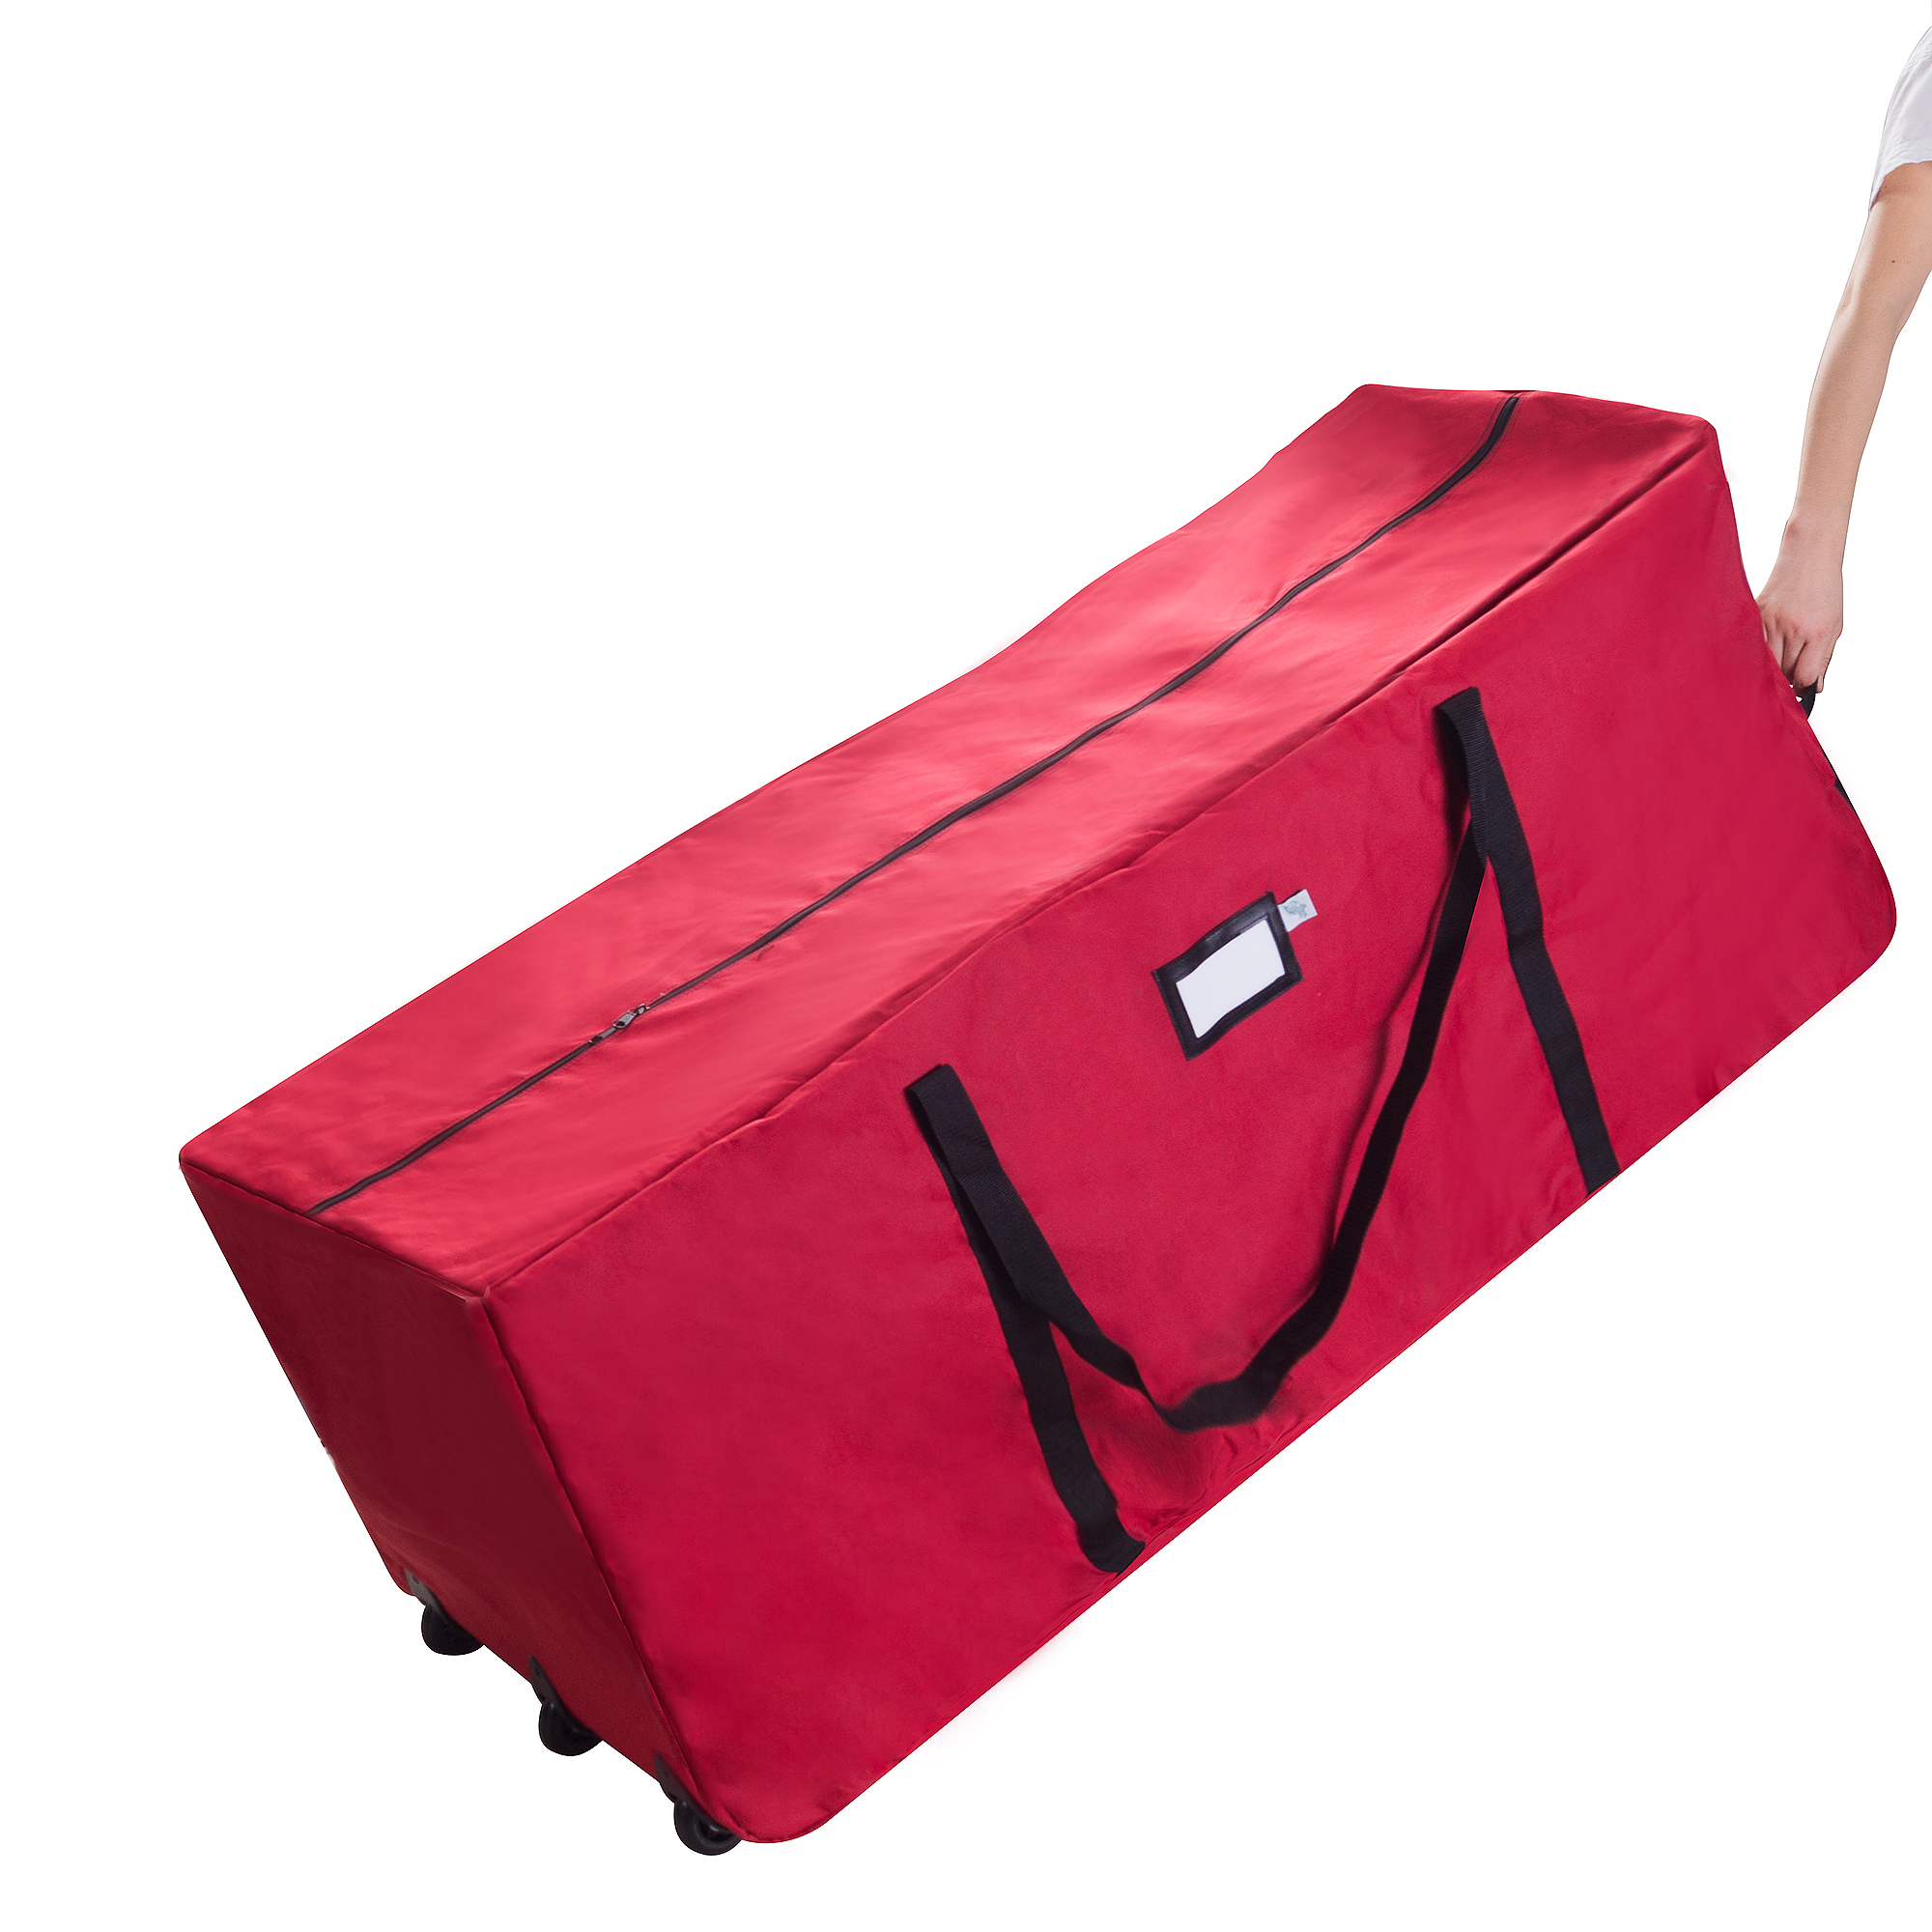 Elf Stor Premium Red Rolling Christmas Tree Storage Duffel Bag for 12 Ft Tree